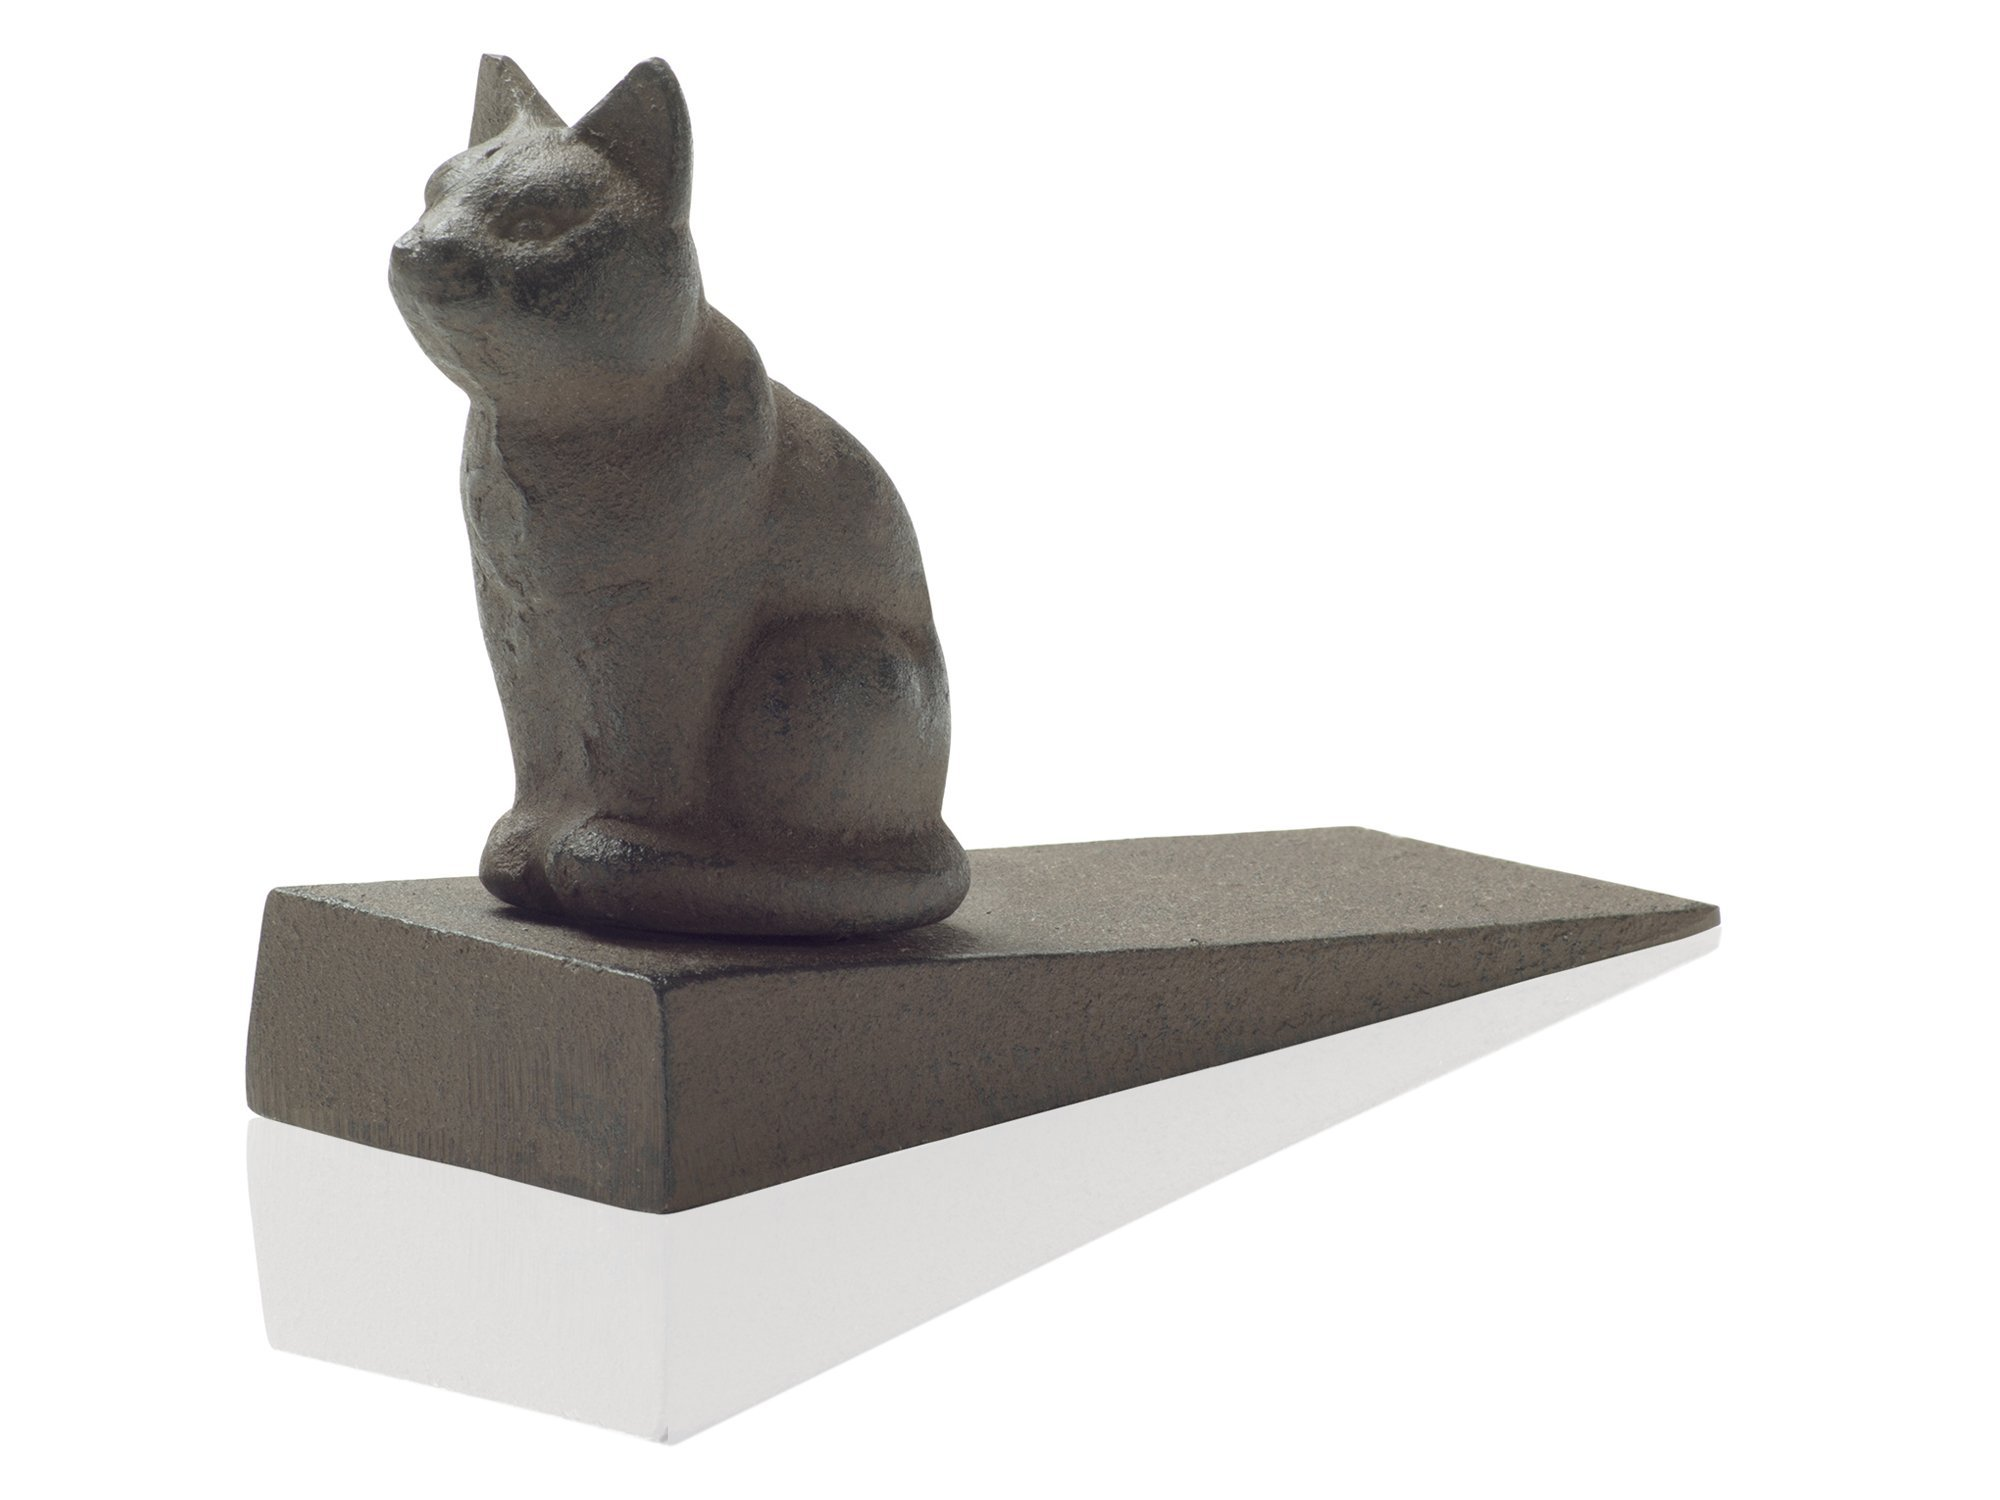 Comfify Vintage Cast Iron Cat Door Stop Wedge Lovely Decorative Finish, Padded Anti-Scratch Felt Bottom Protects Floors   in Rust Brown (Cat Door Stop CA-1507-12) by Comfify (Image #5)